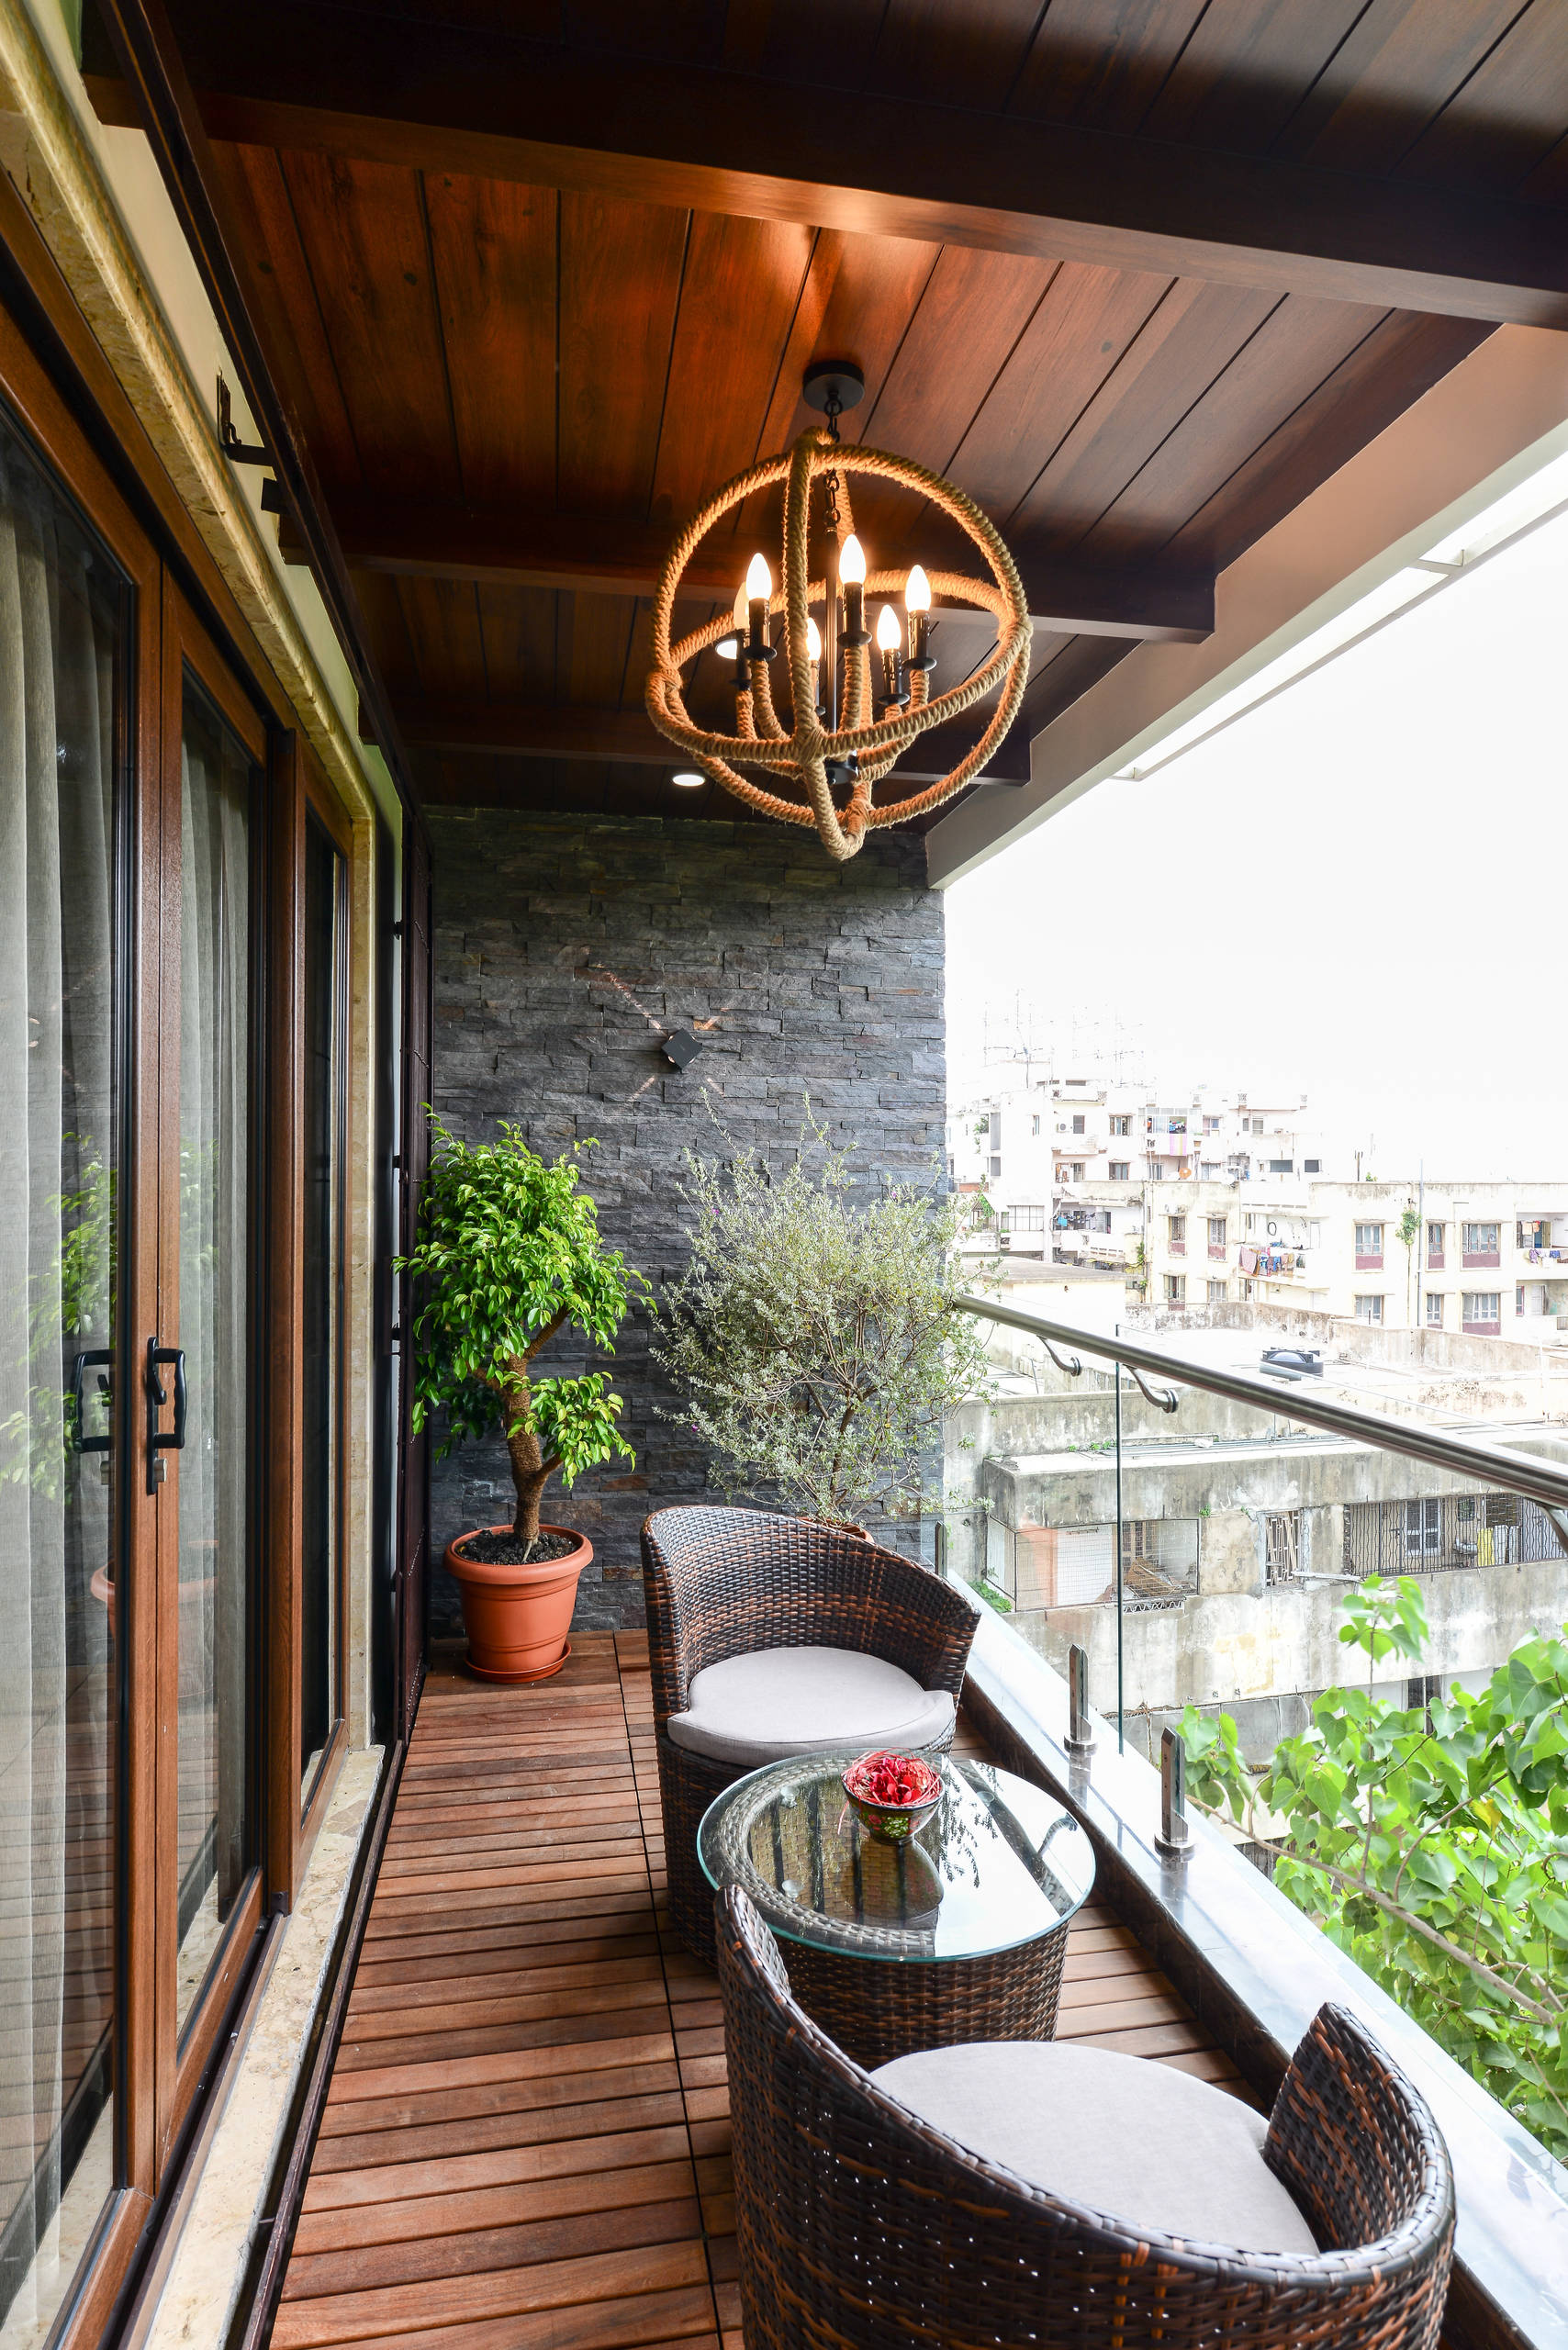 75 beautiful balcony pictures ideas houzz